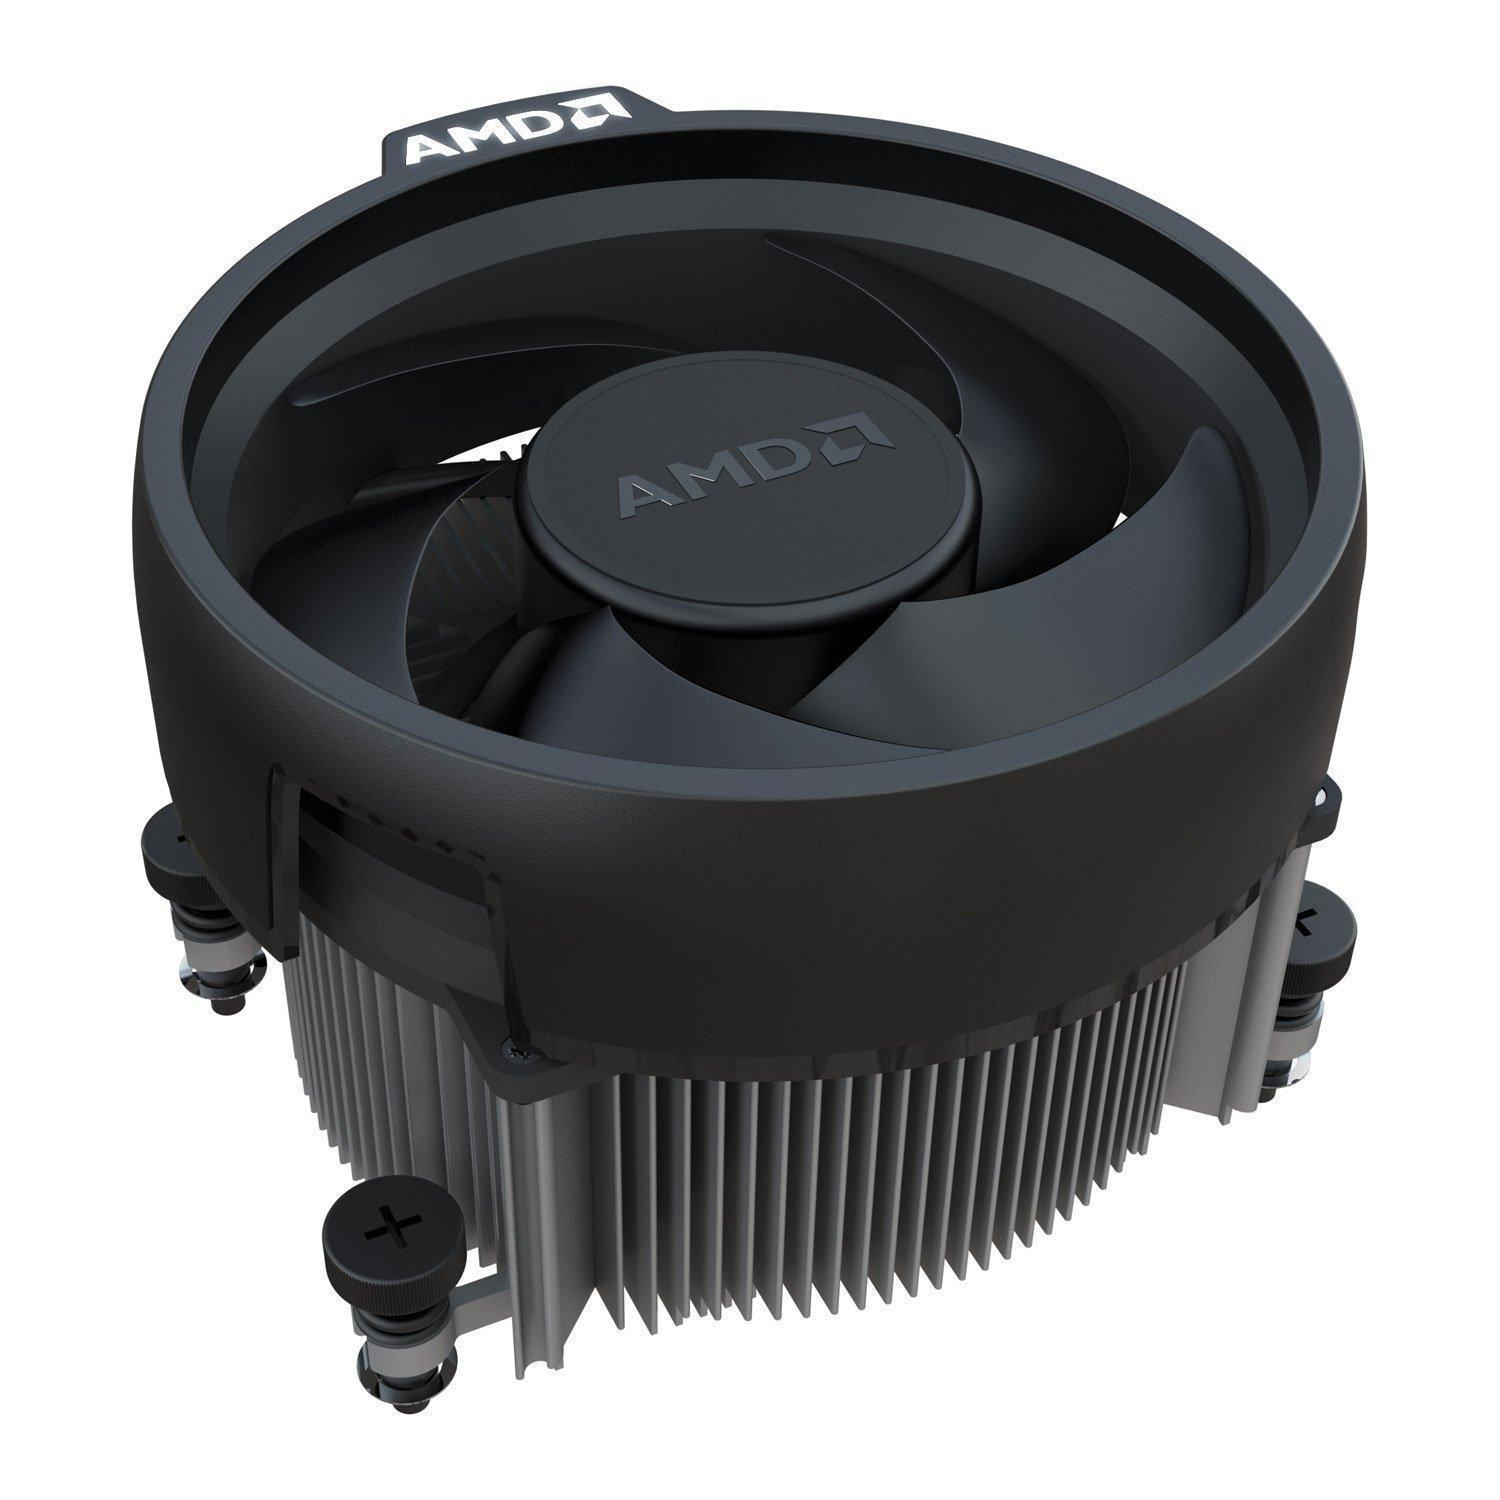 AMD Ryzen 5 2600X Six-Core Processor/CPU with Wraith Spire Cooler